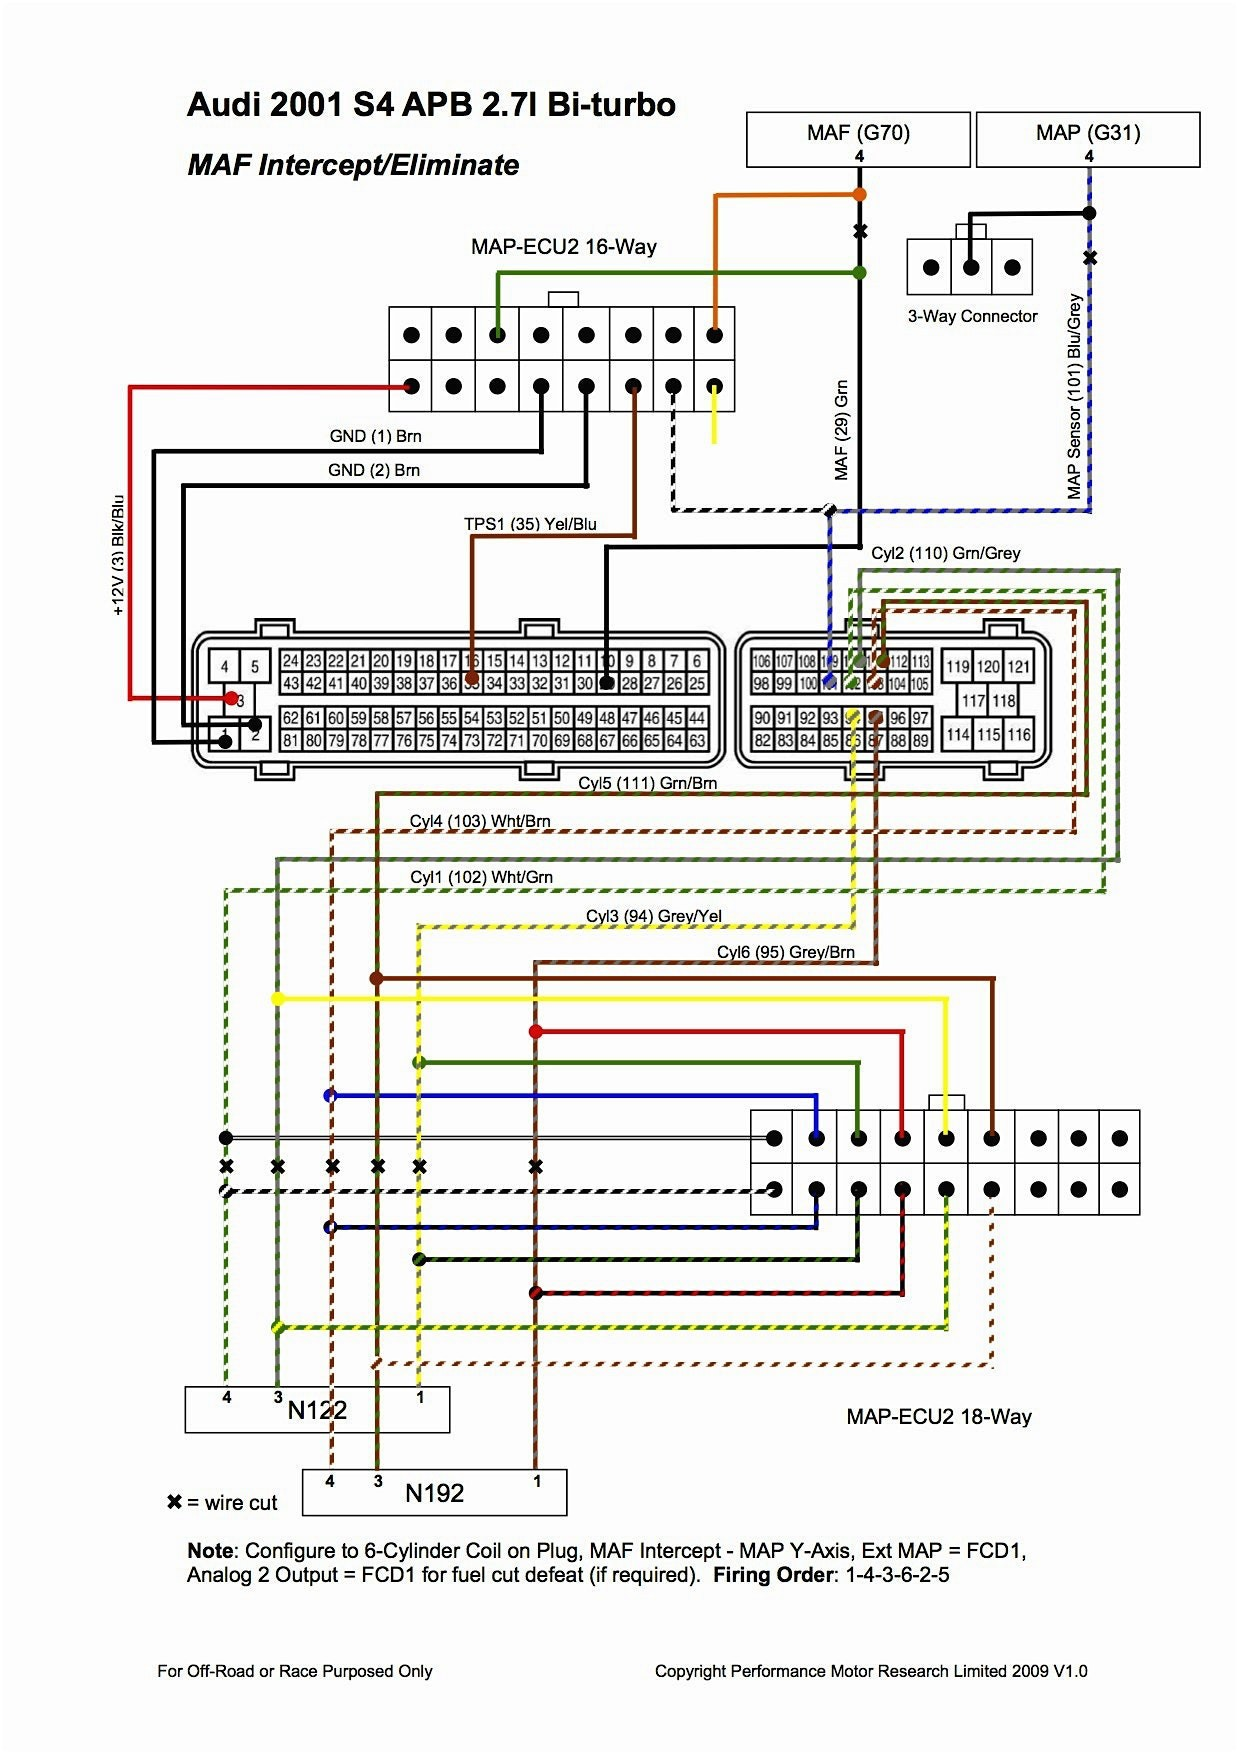 DIAGRAM] 2010 Vw Jetta Stereo Wiring Diagram FULL Version HD Quality Wiring  Diagram - MATE-DIAGRAM.RADD.FRDiagram Database - Radd